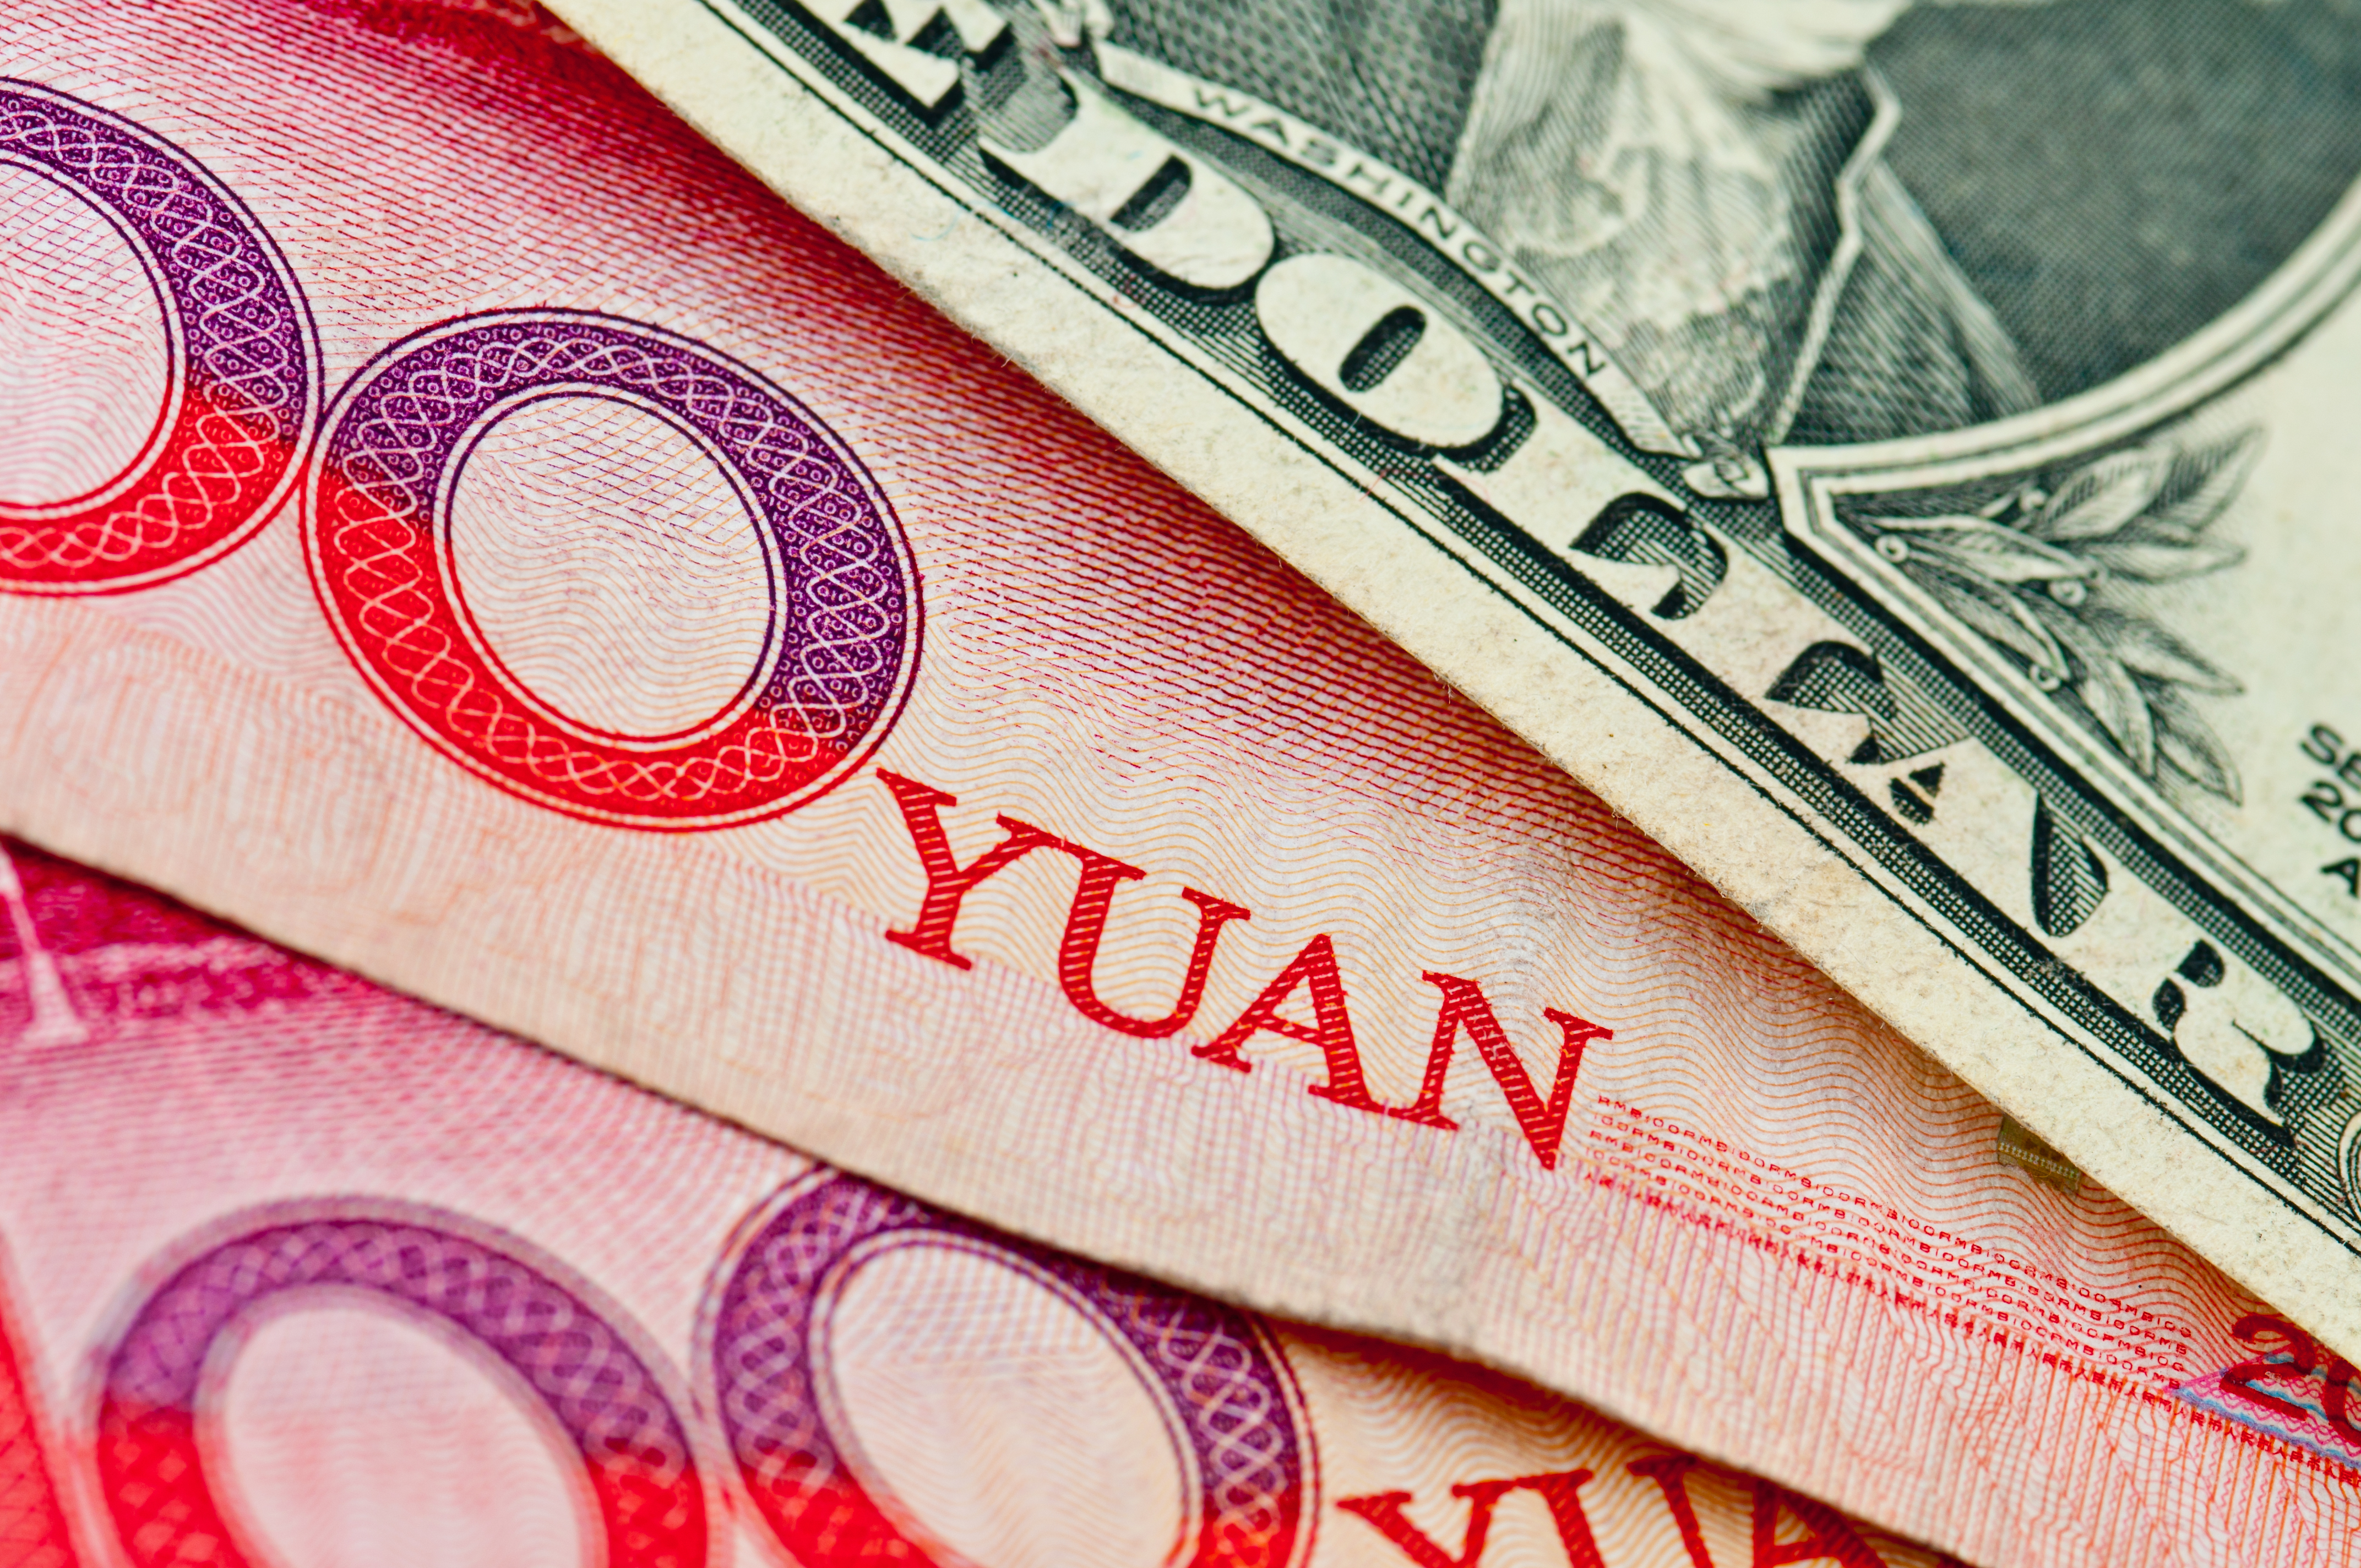 close up of yuan currency and us dollar